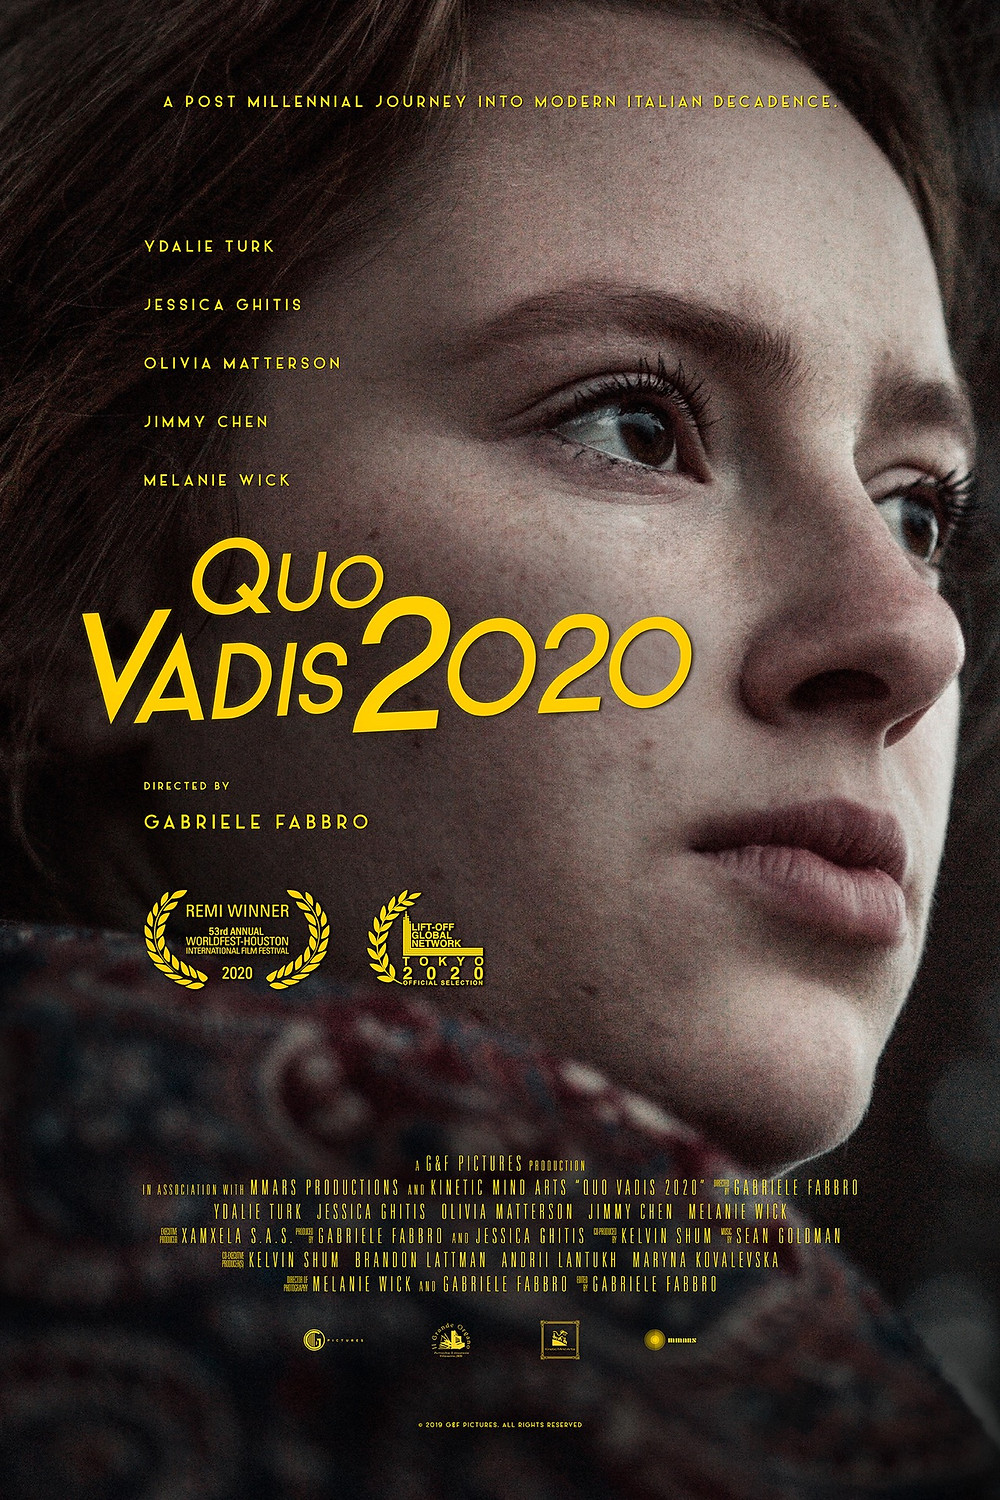 Poster of the film: side shot of the close up of an actress who looks forward. The title of the tilm is written in big, yellow letters in front of the image.